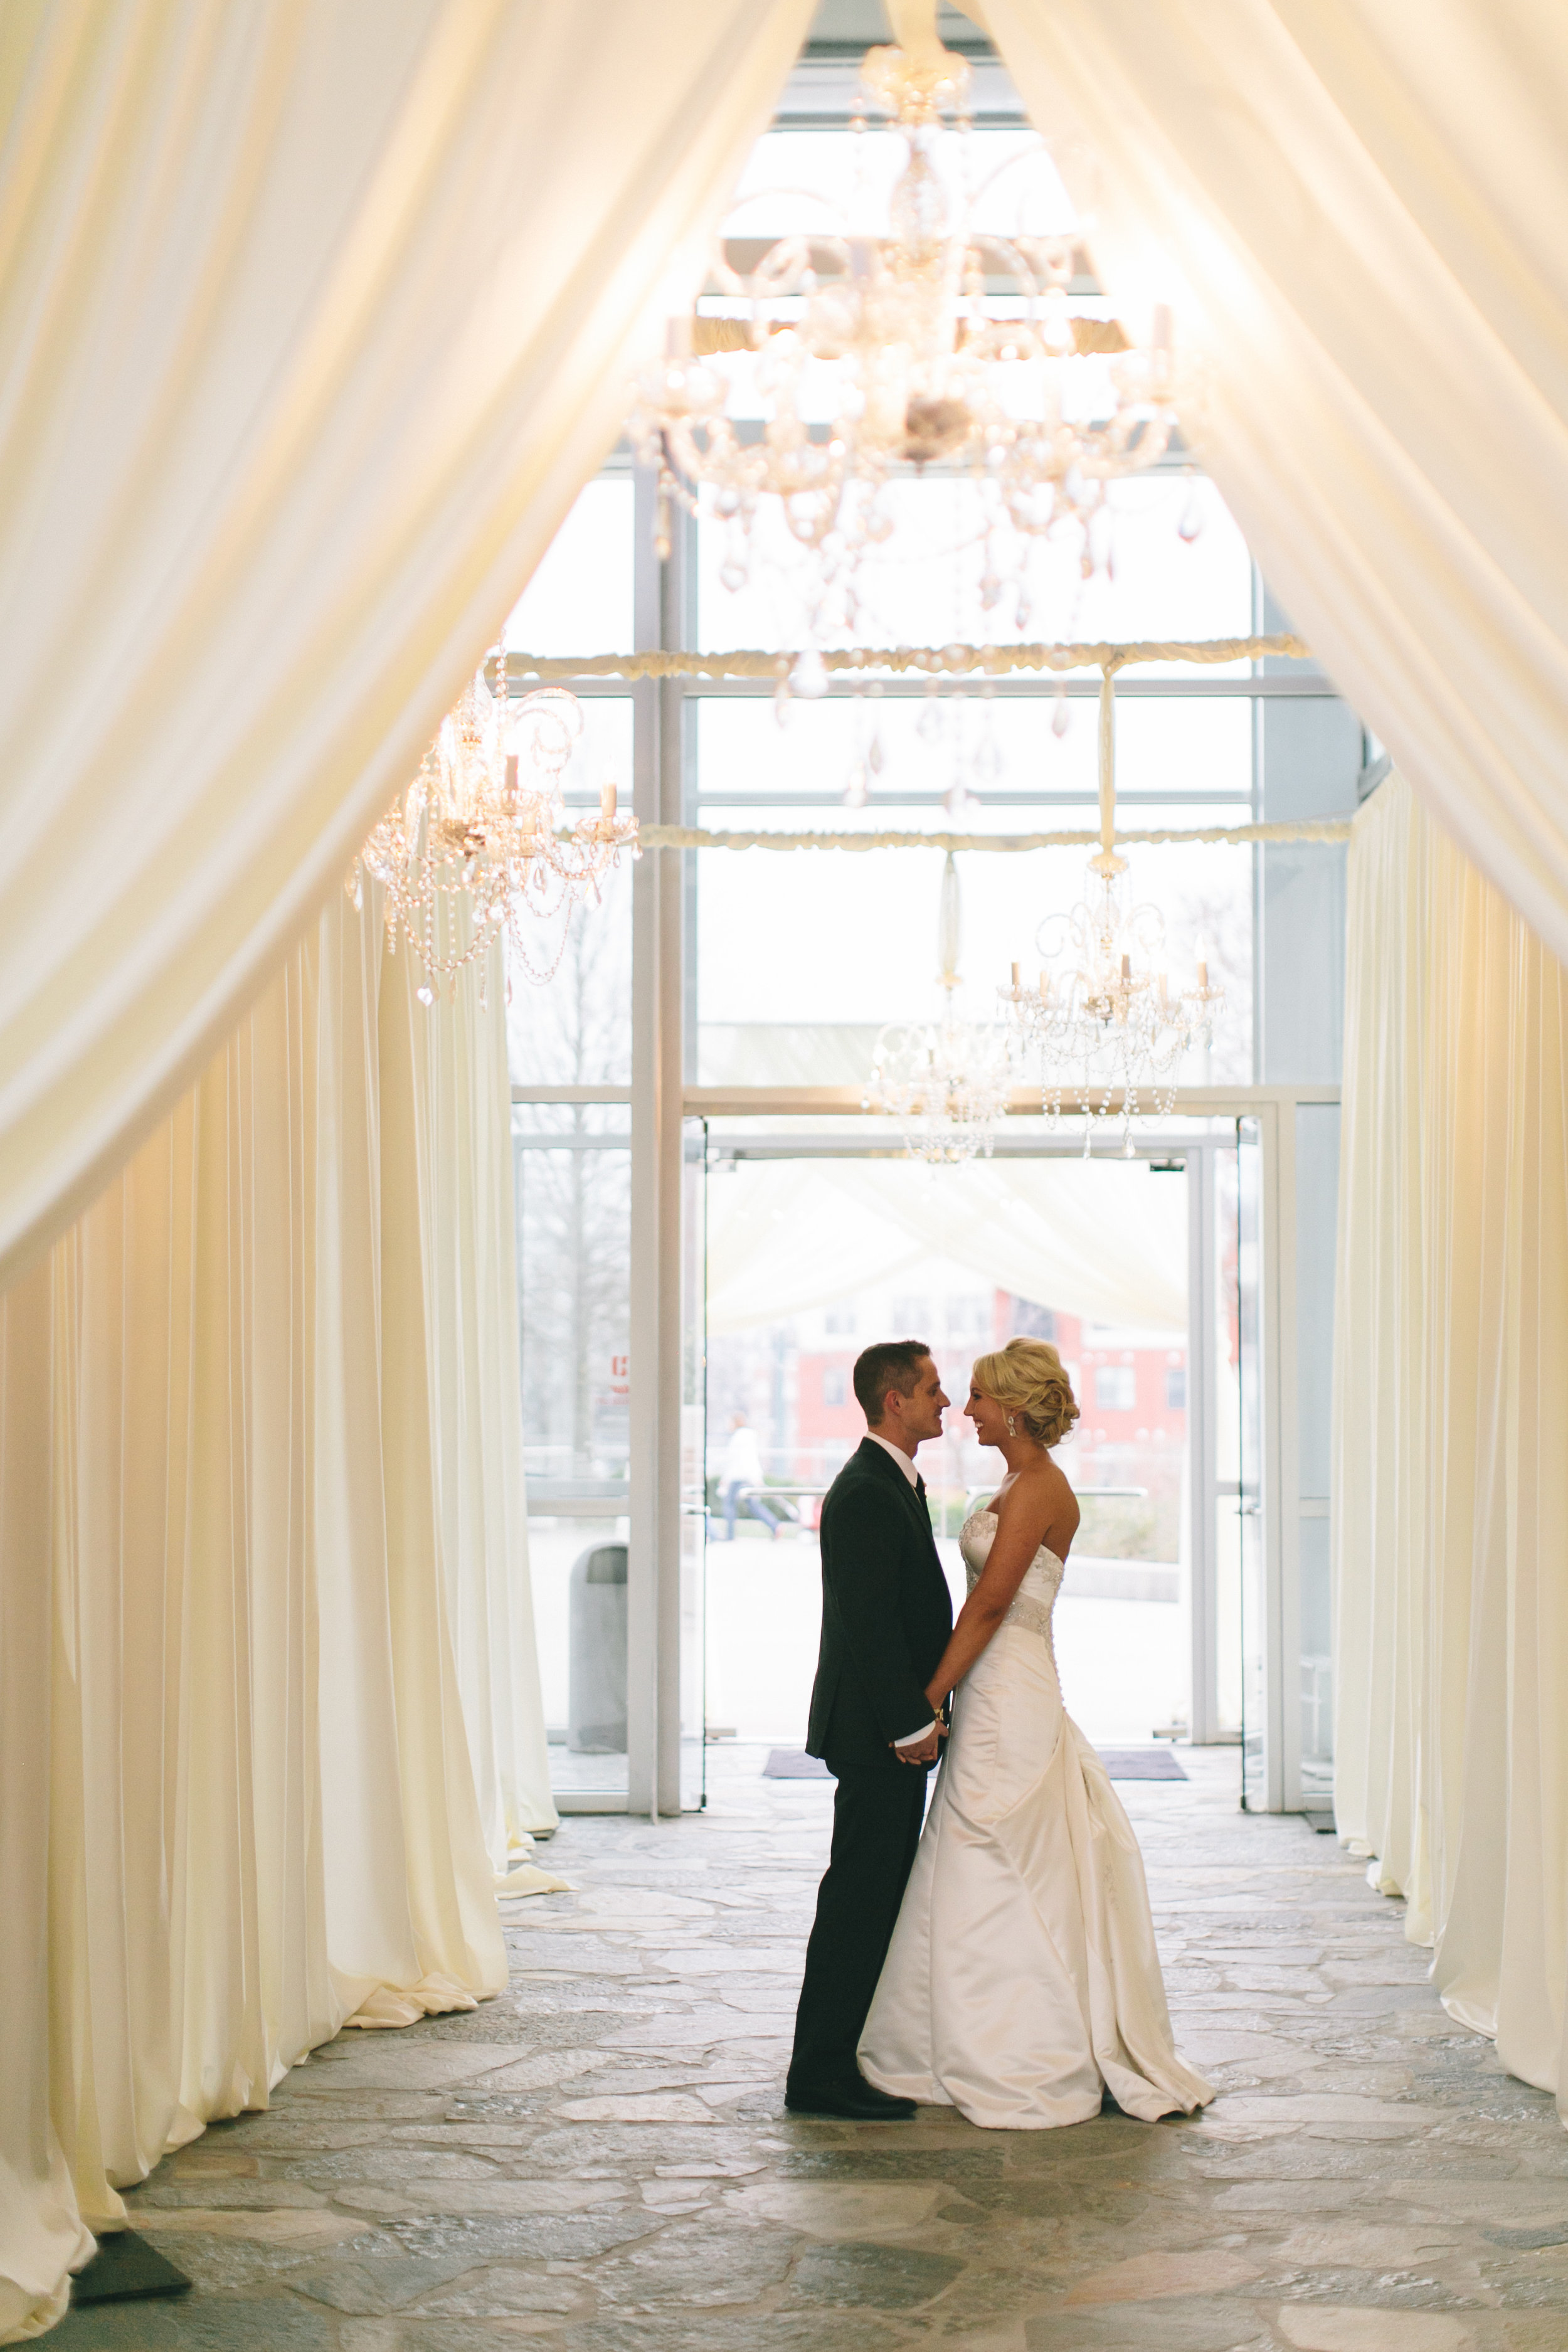 Hunter_Draping with Chandeliers at Entrance.jpg